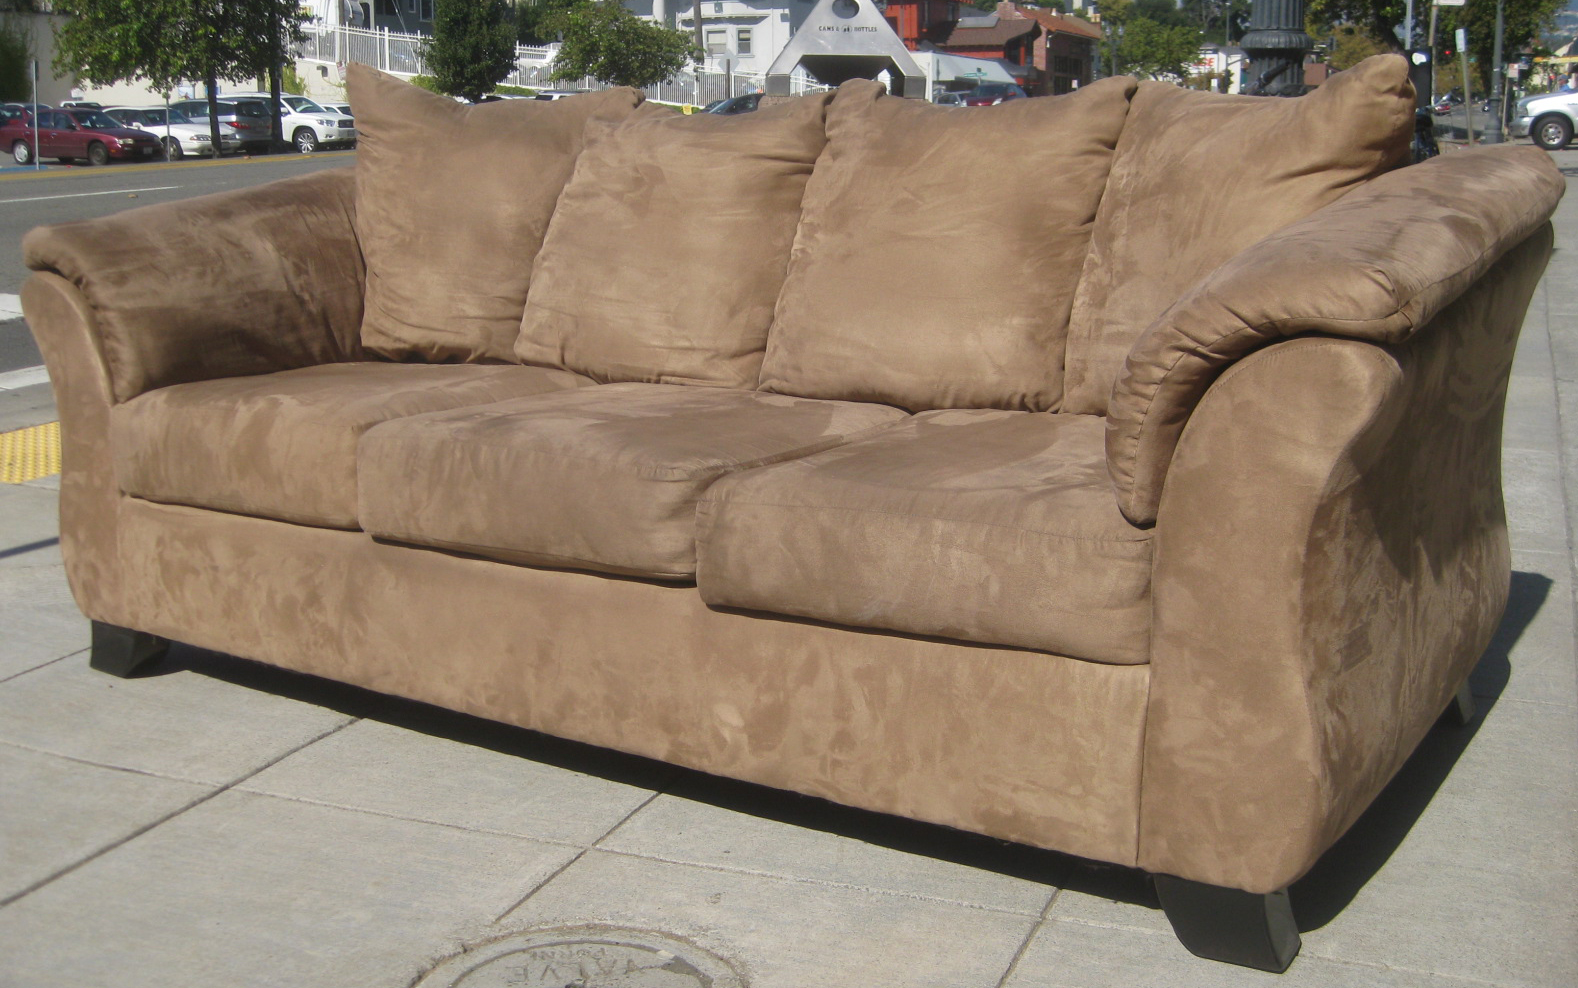 How Do U Clean A Suede Couch | Home Improvement